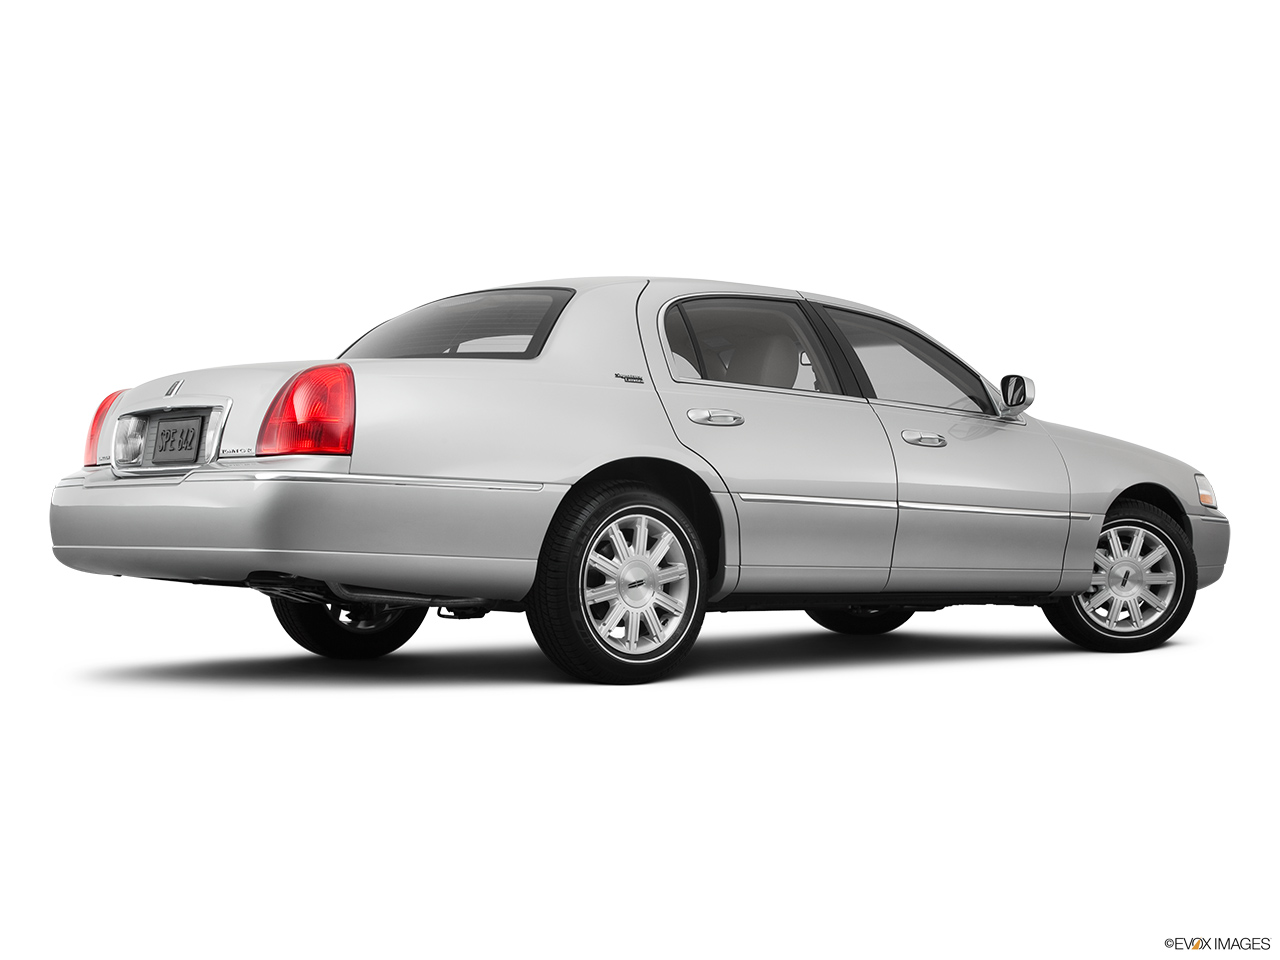 2011 Lincoln Town Car Signature Limited Low/wide rear 5/8.